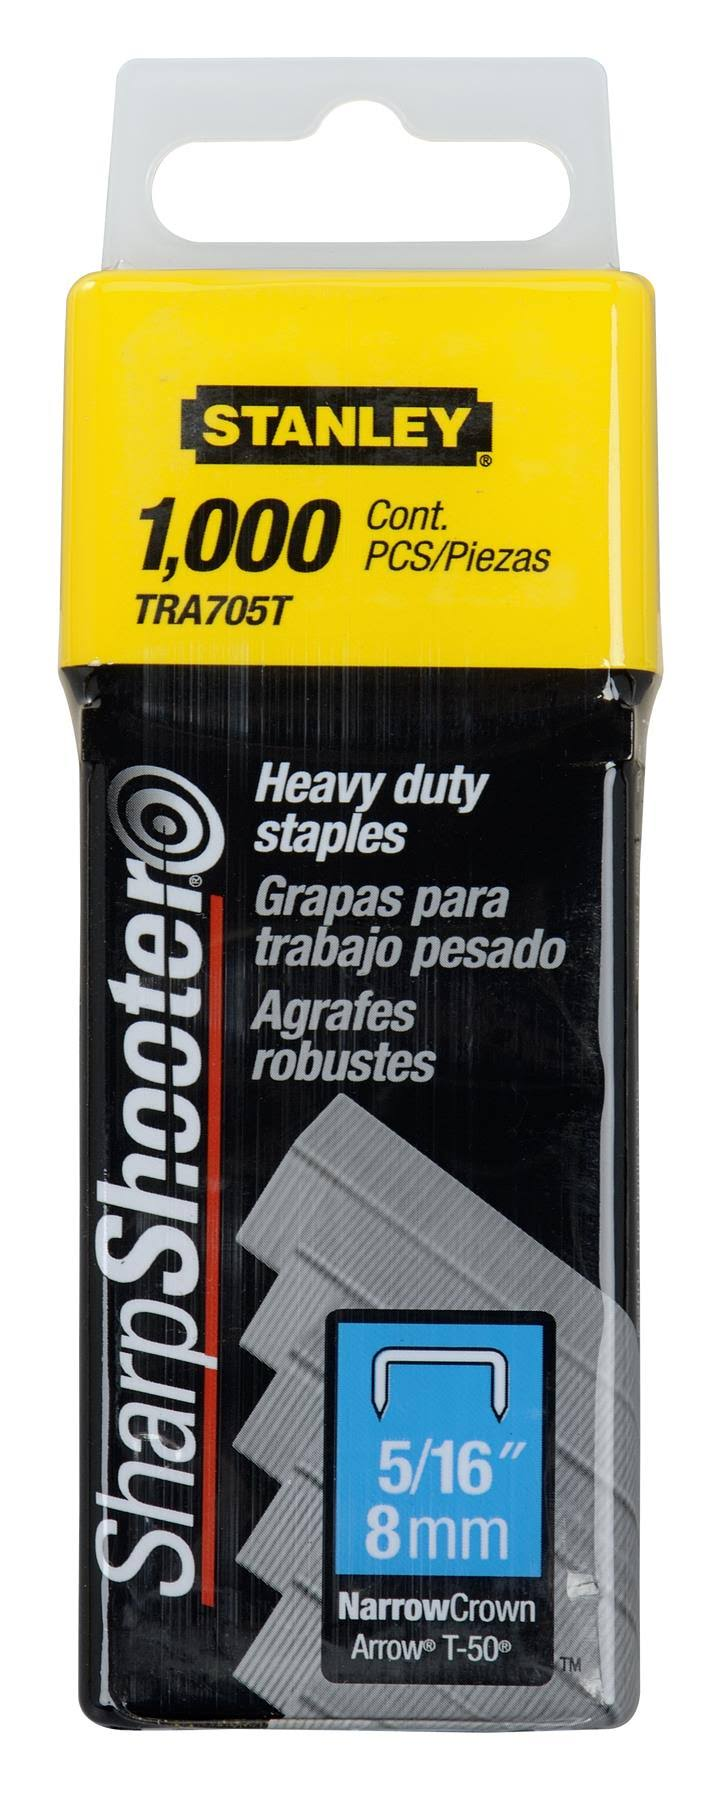 Stanley Heavy Duty Staples - Pack of 1000, 5/16""